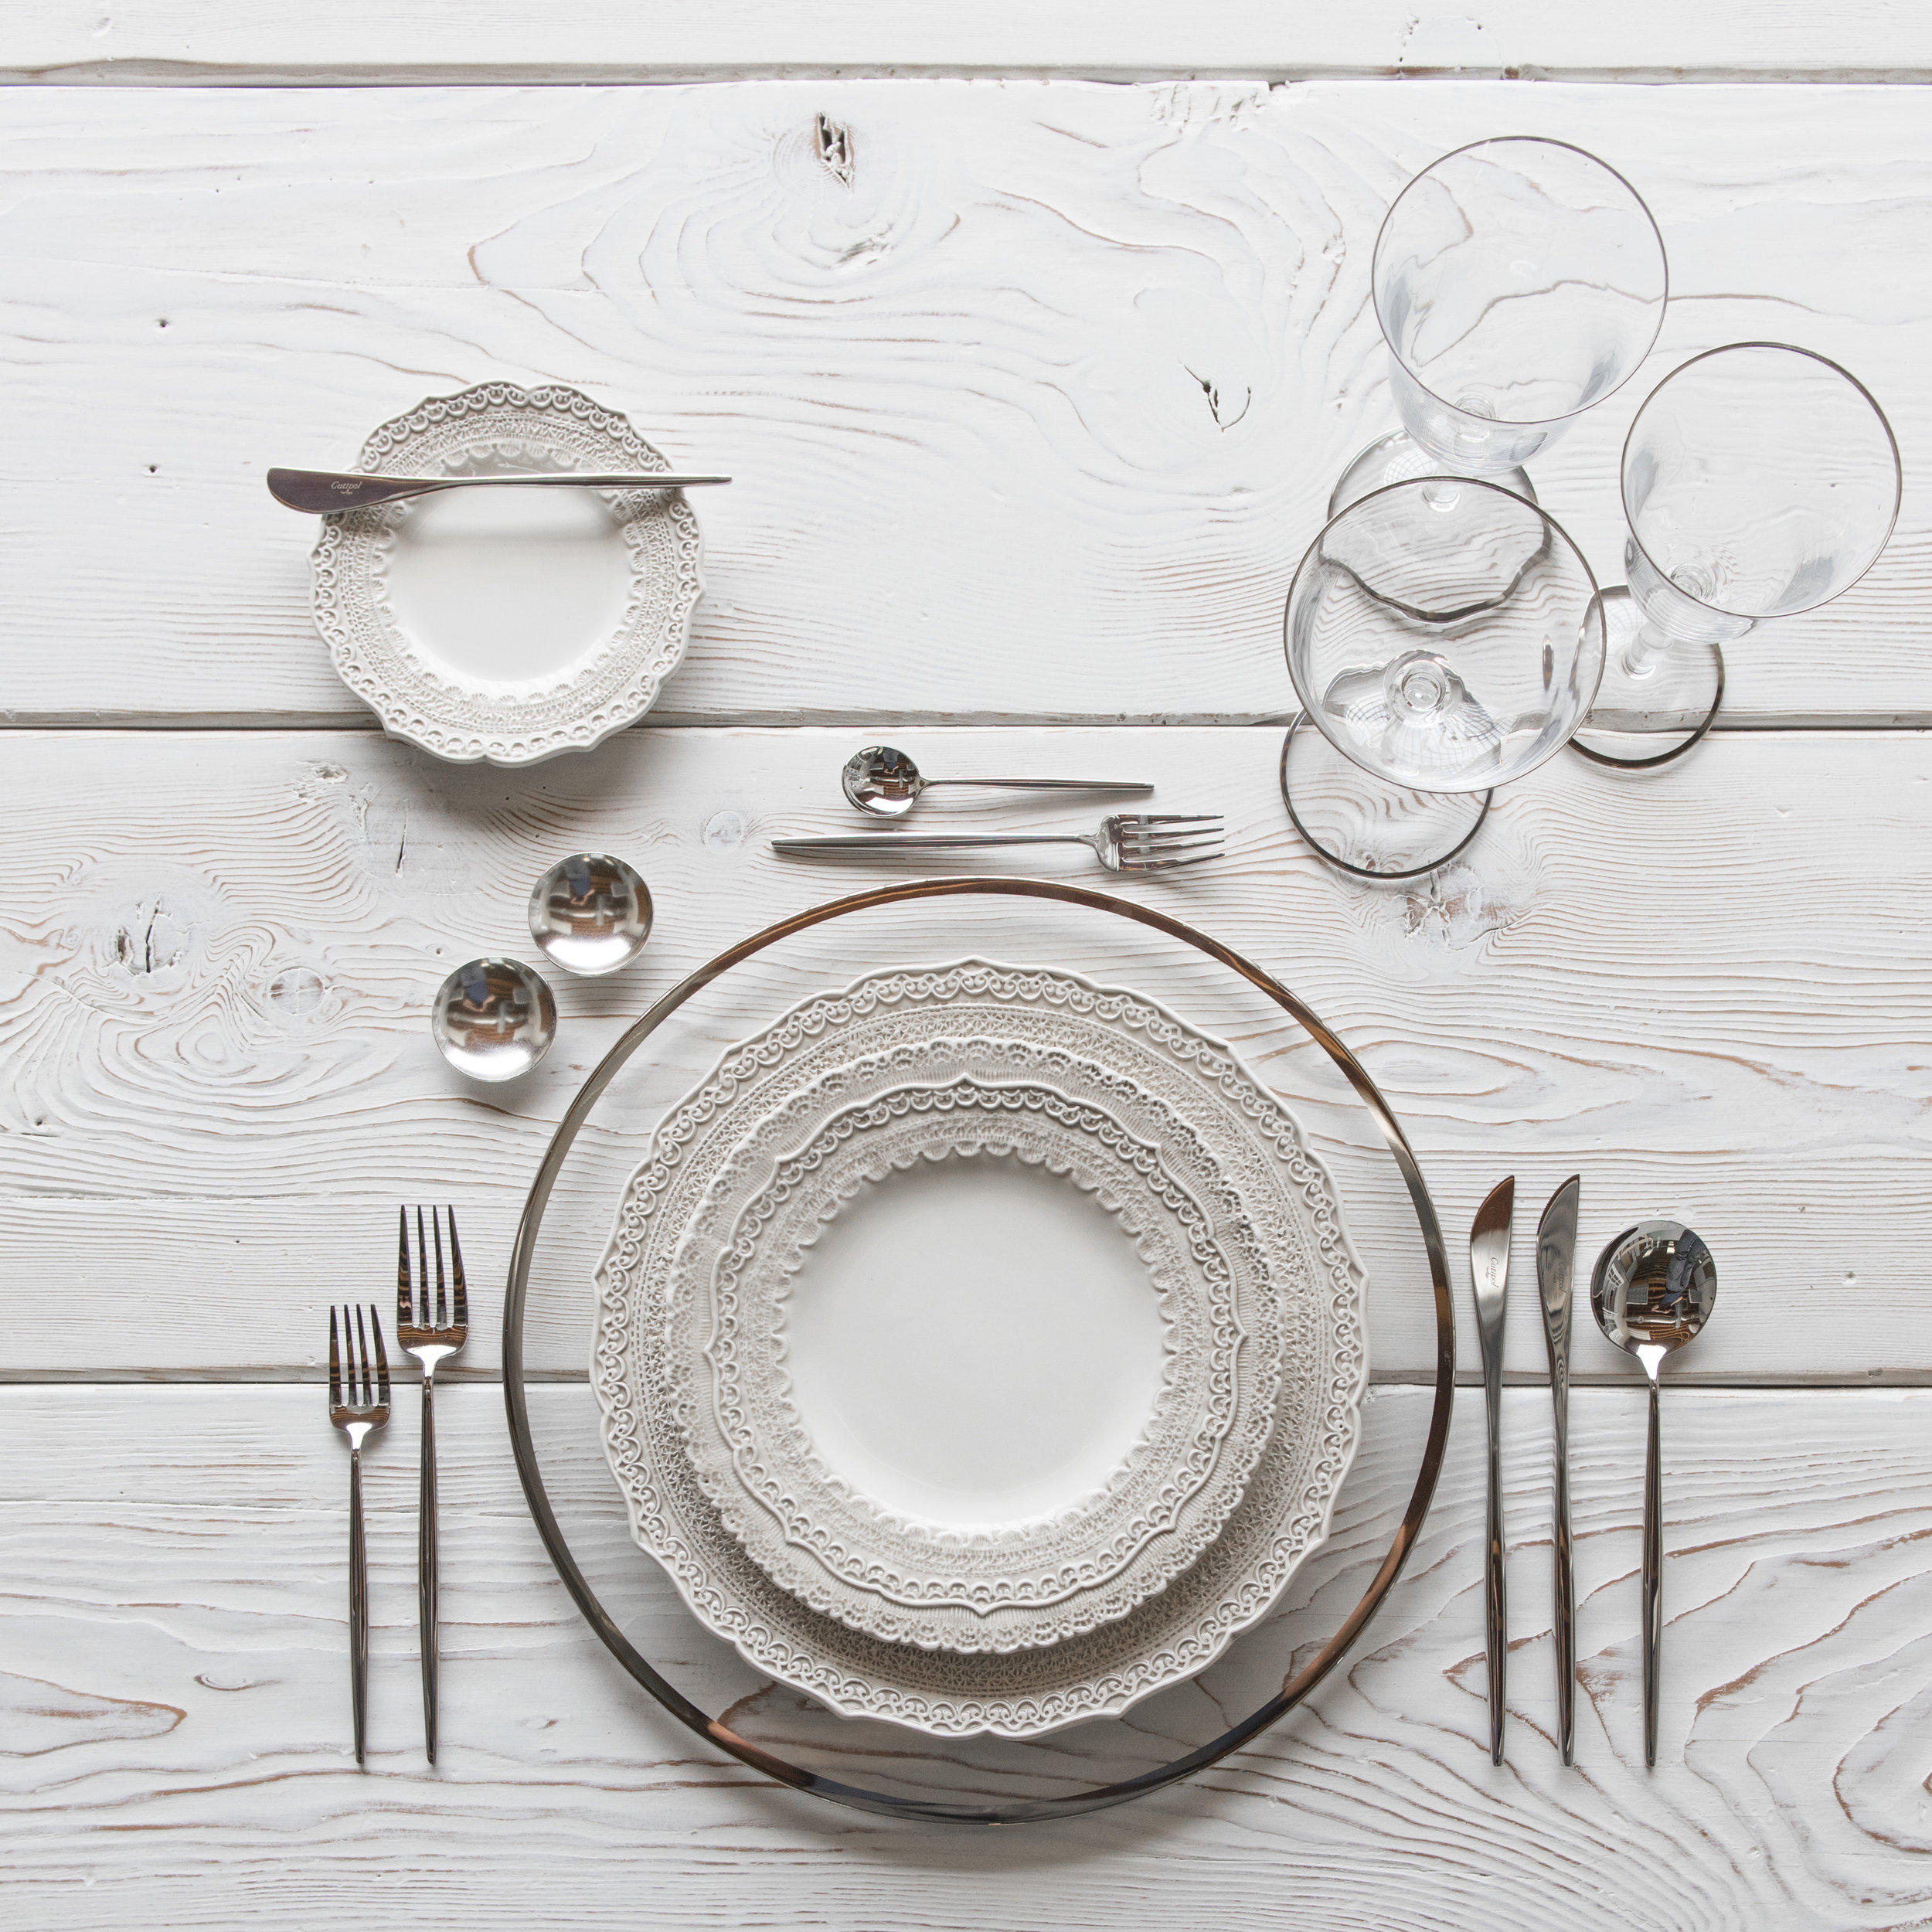 RENT: Halo Glass Chargers in Platinum + Lace Dinnerware in White + Moon Flatware in Polished Steel + Chloe Platinum Rimmed Glassware + Silver Salt Cellars  SHOP:Halo Glass Chargers in Platinum +Moon Flatware in Polished Steel + Chloe Platinum Rimmed Glassware